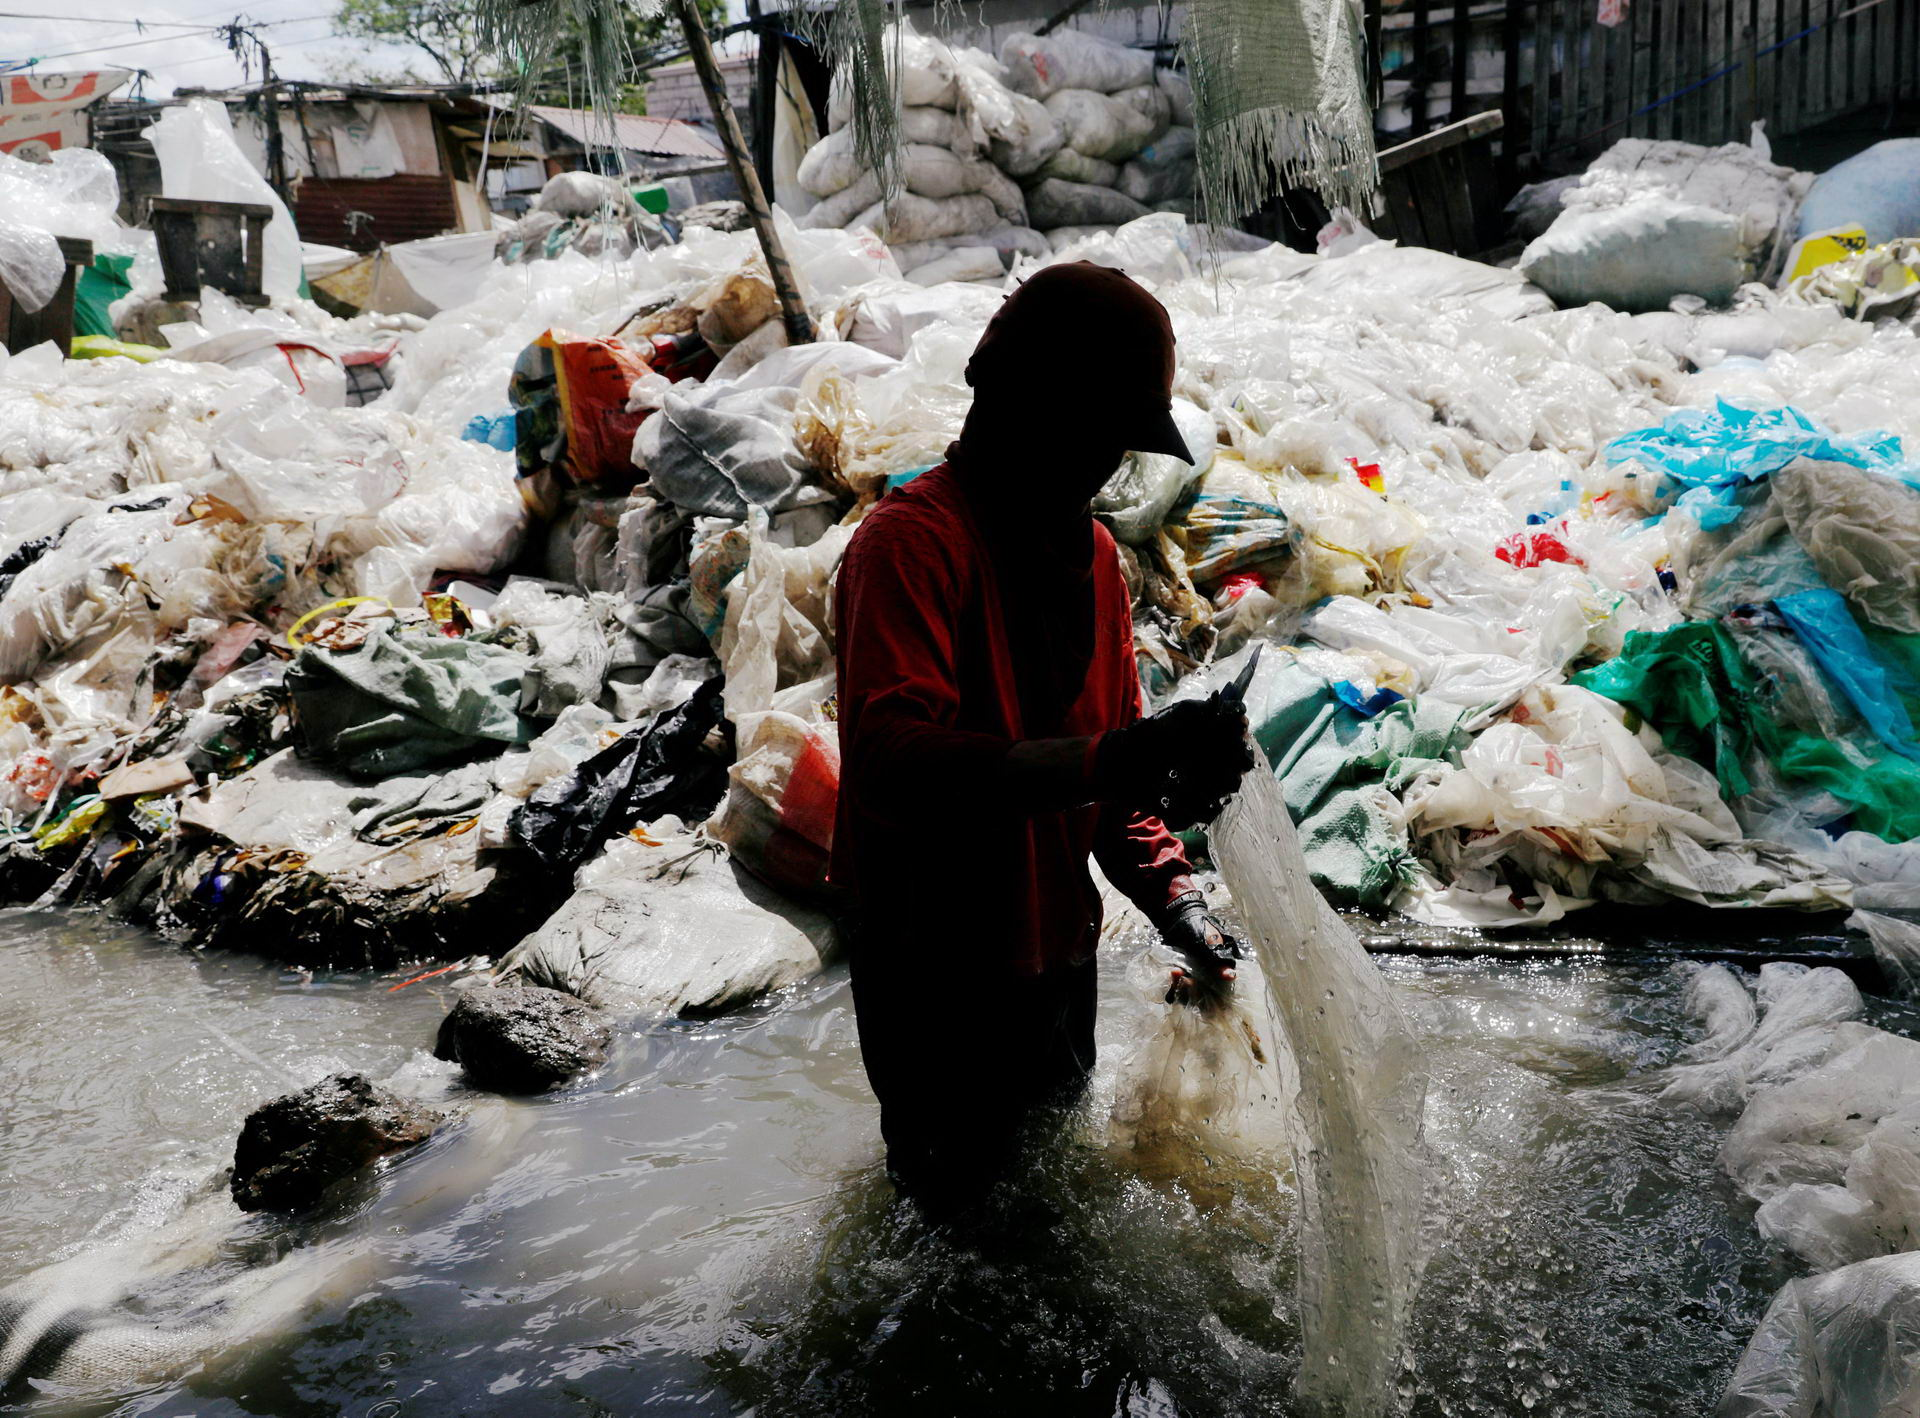 A man washes plastic for recycling in a murky pond